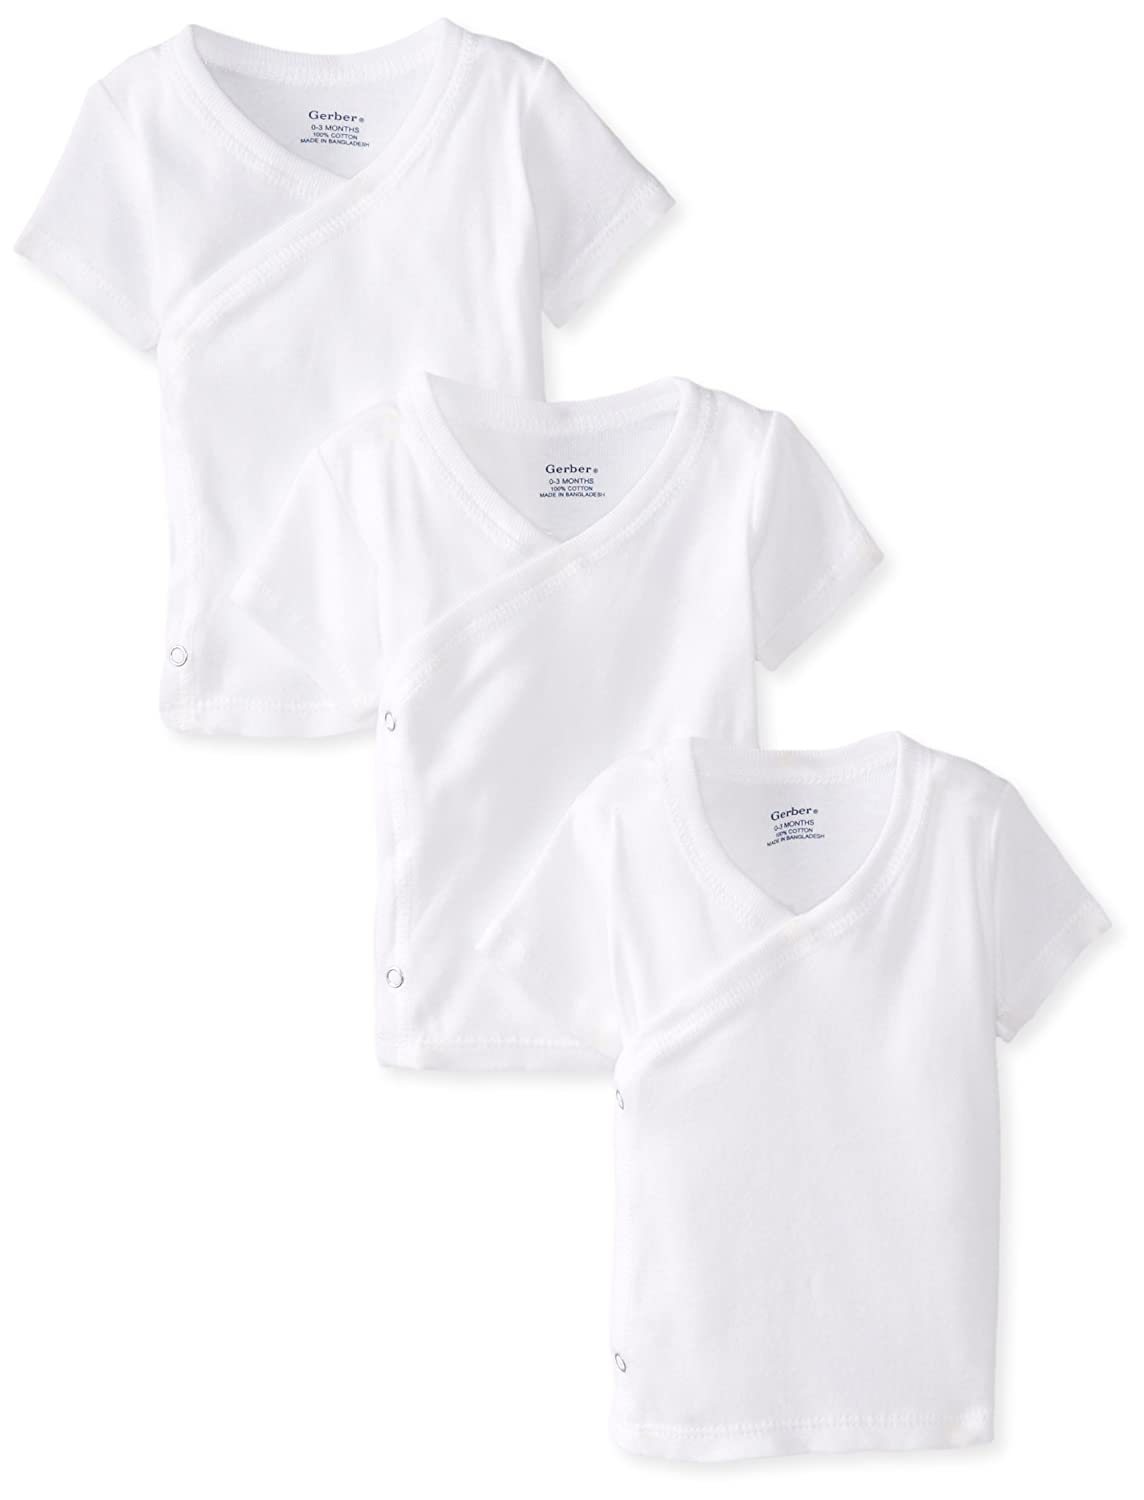 Gerber Unisex Baby 3 Pack Short-Sleeve Shirts with Side Snaps